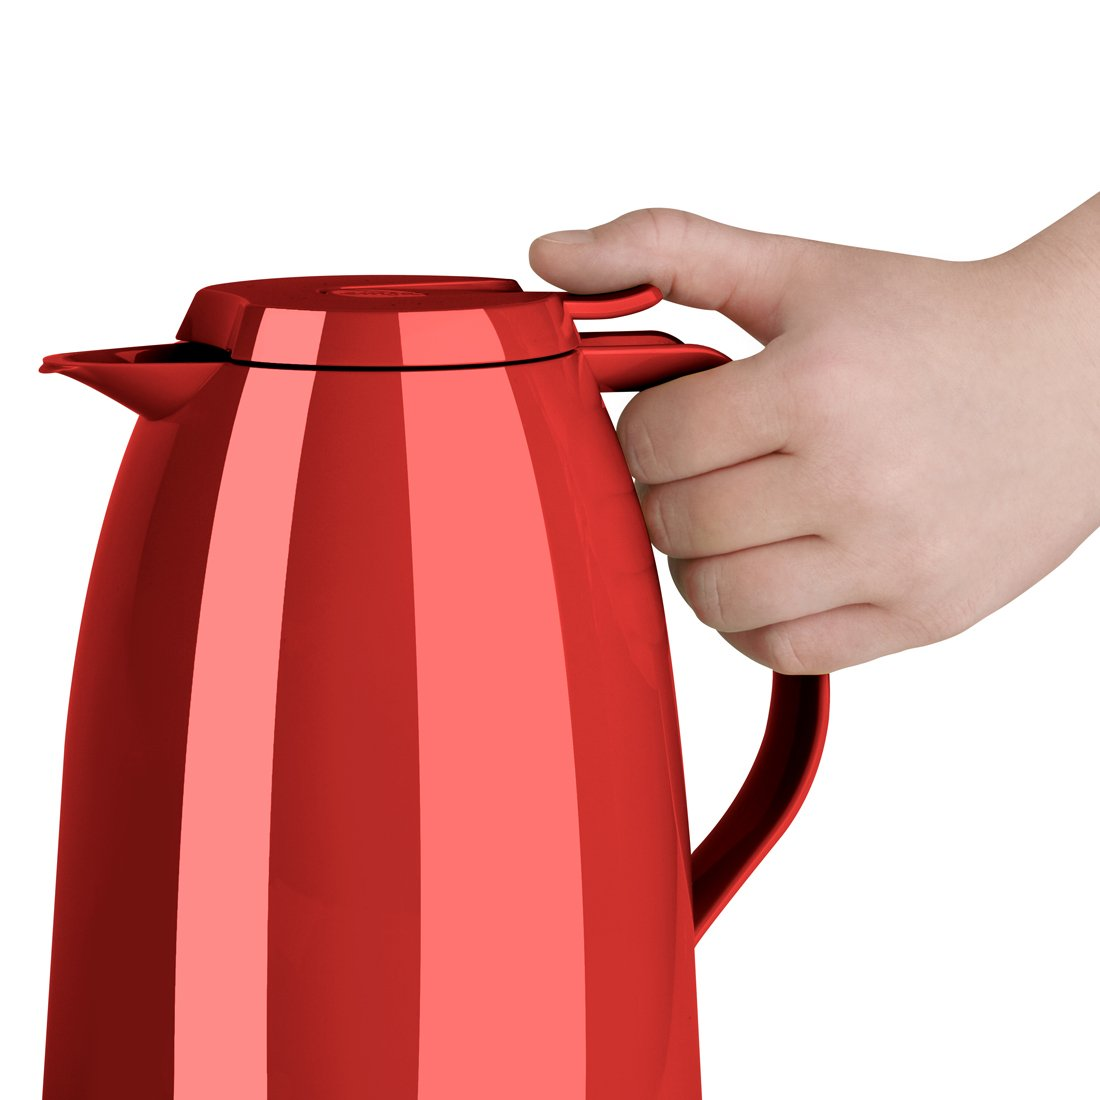 51 oz Emsa Mambo High Impact Plastic Thermal Carafe with Glass Liner Red